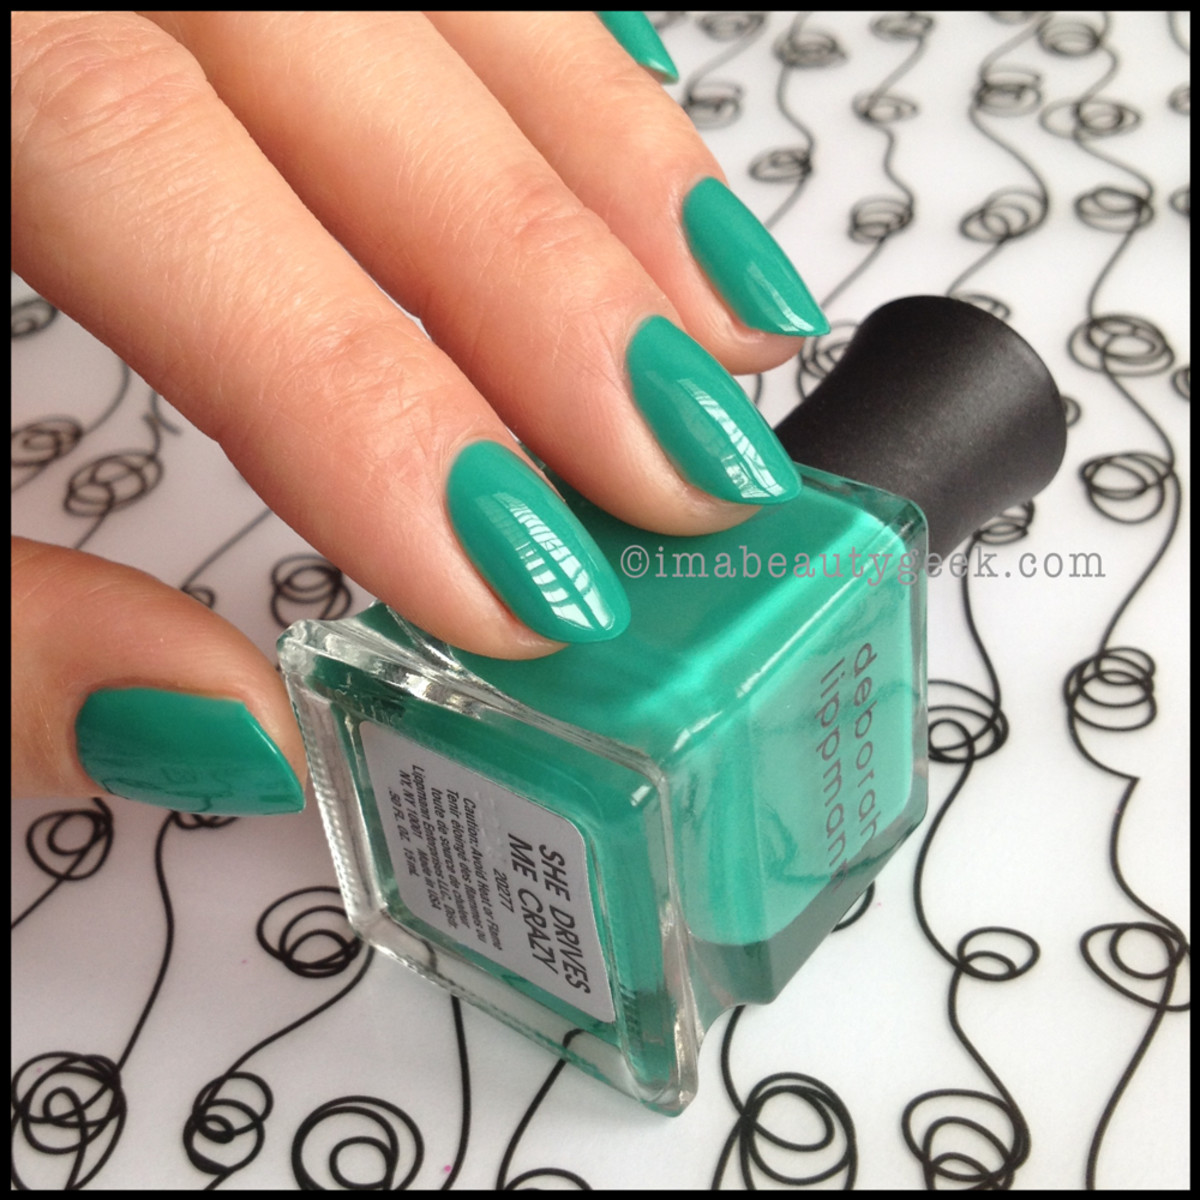 Deborah Lippmann She Drives Me Crazy 80's Rewind